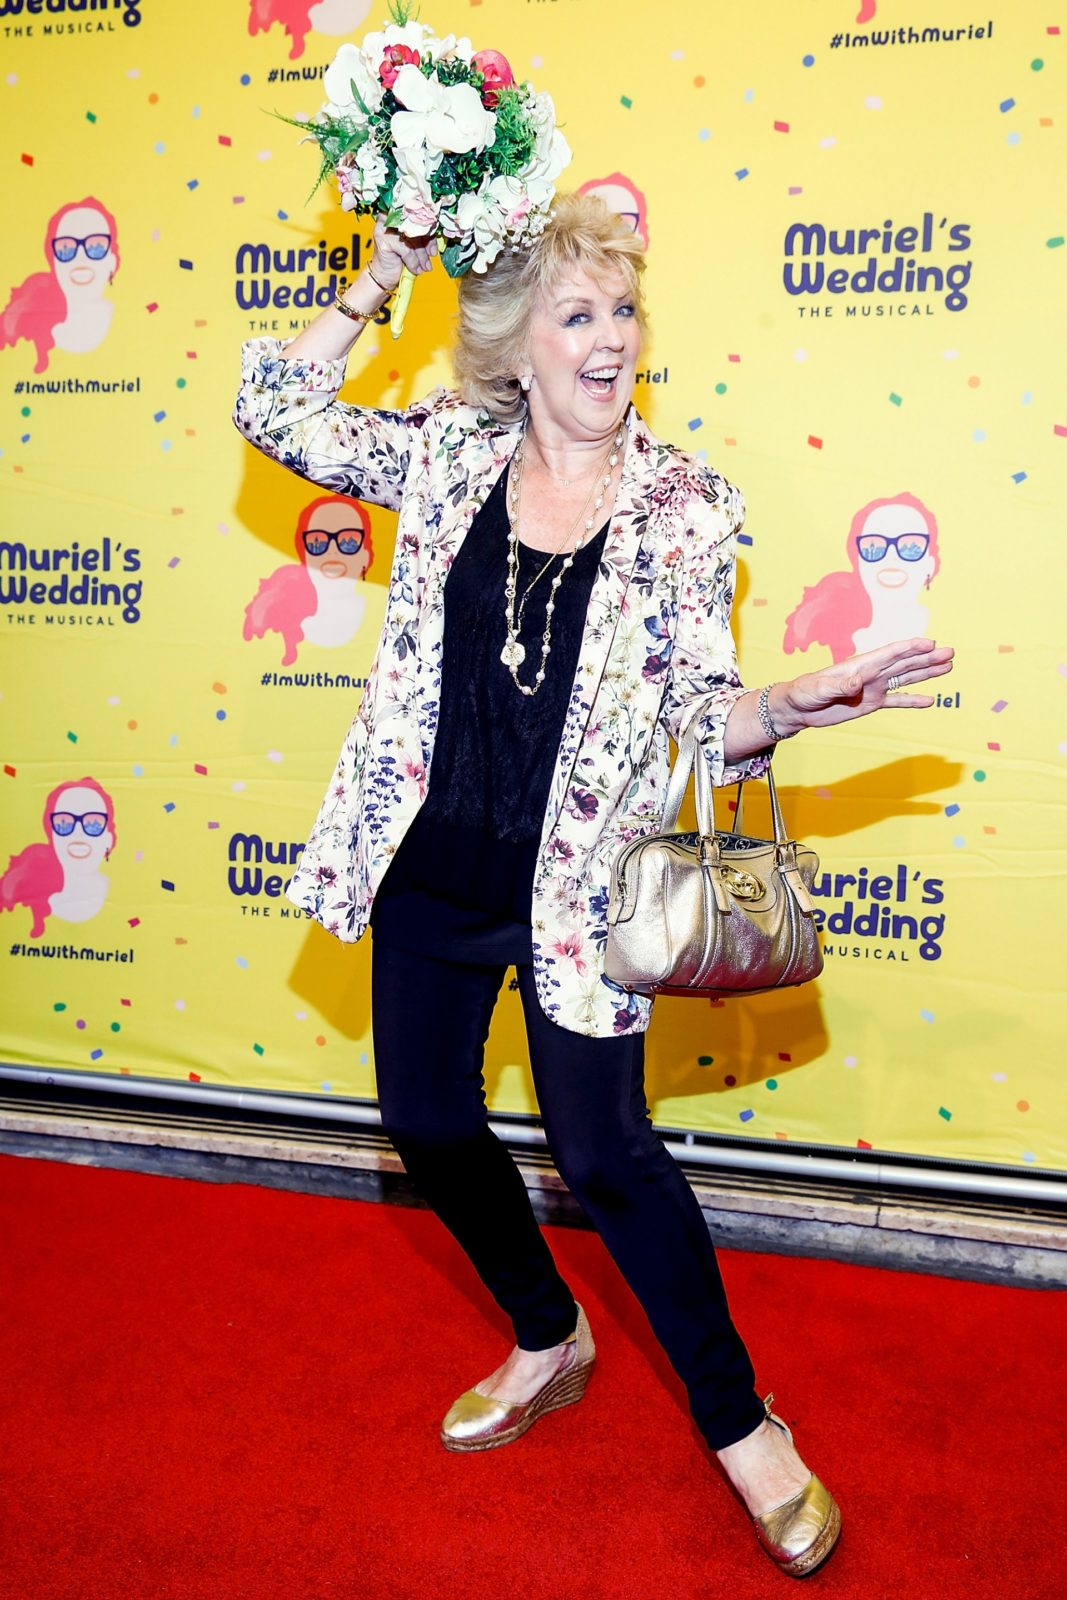 Patti Newton had some fun on the red carpet when she attended Muriel's Wedding The Musical at Her Majesty's Theatre.